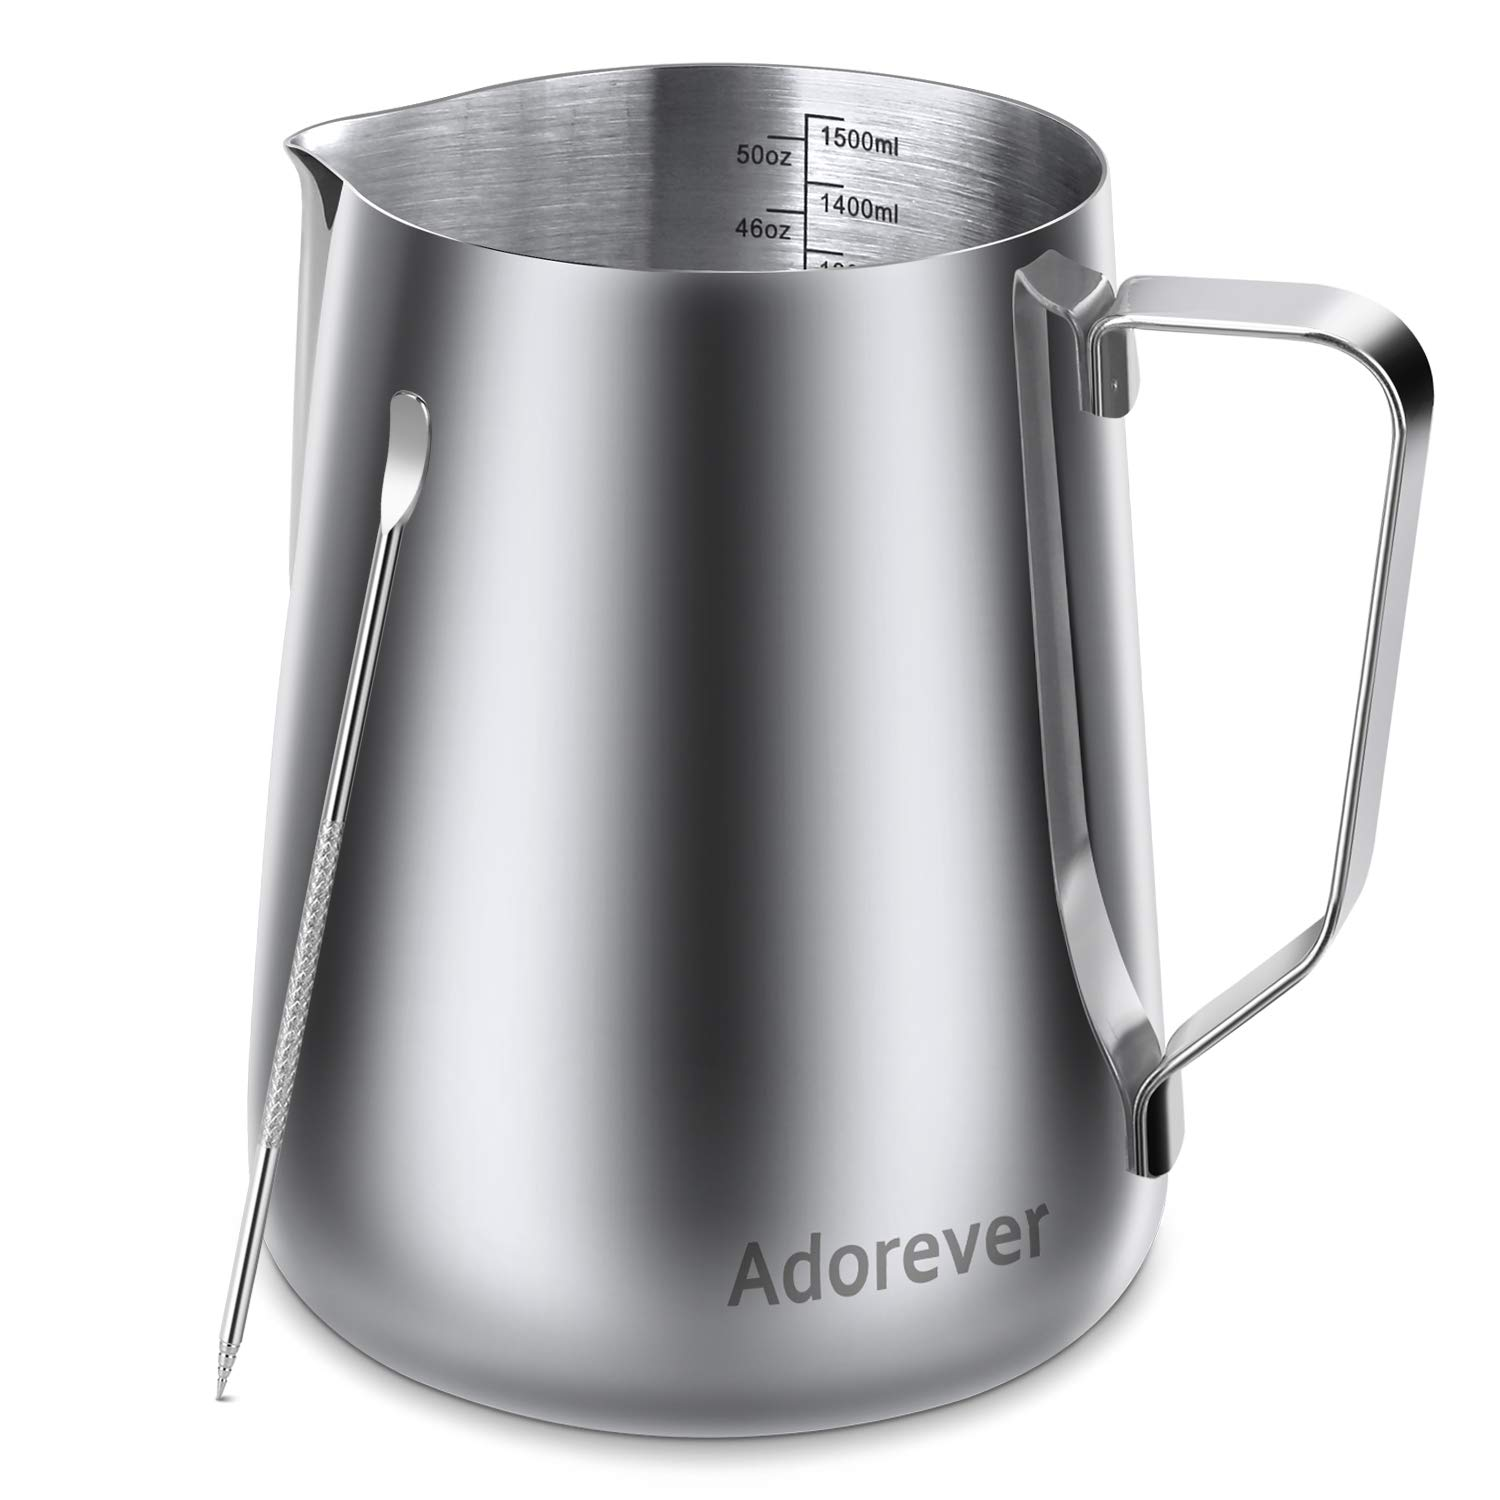 Milk Frothing Pitcher 1500ml/50oz Steaming Pitchers Stainless Steel Milk Coffee Cappuccino Latte Art Barista Steam Pitchers Milk Jug Cup with Decorating Art Pen, Sliver